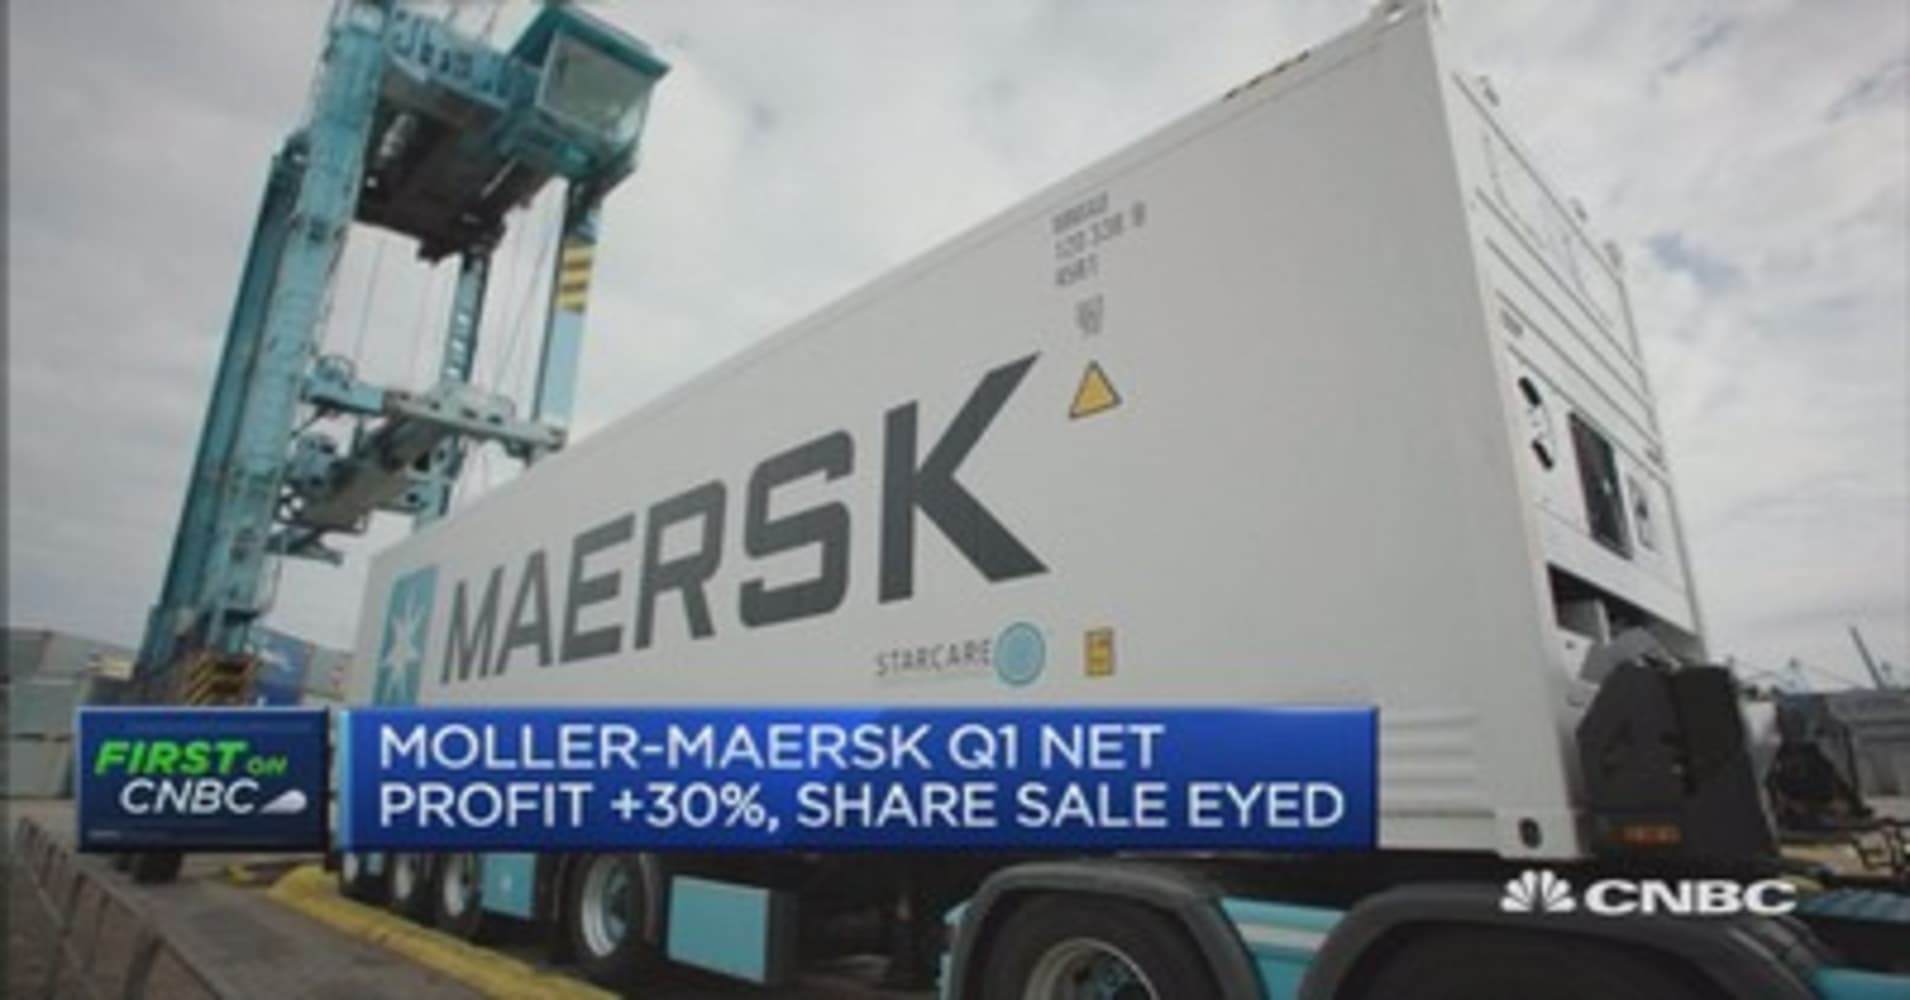 Reducing costs due to low oil prices: Moller Maersk CEO